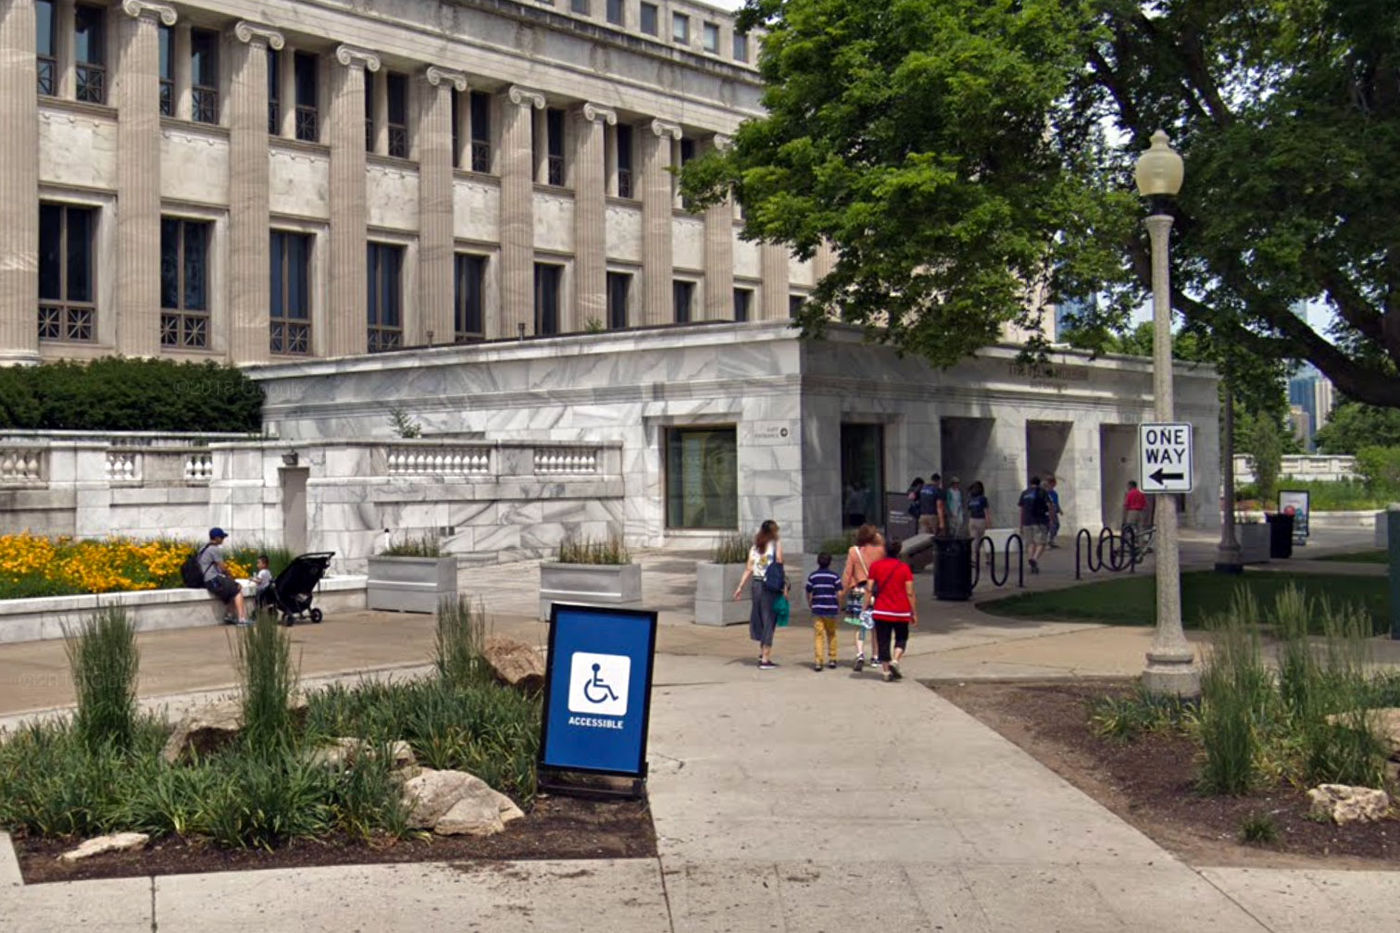 A sidewalk leads to the Field Museum's East entrance, a one-story atrium with gardens next to it. A sign indicates that the entrance is wheelchair accessible.